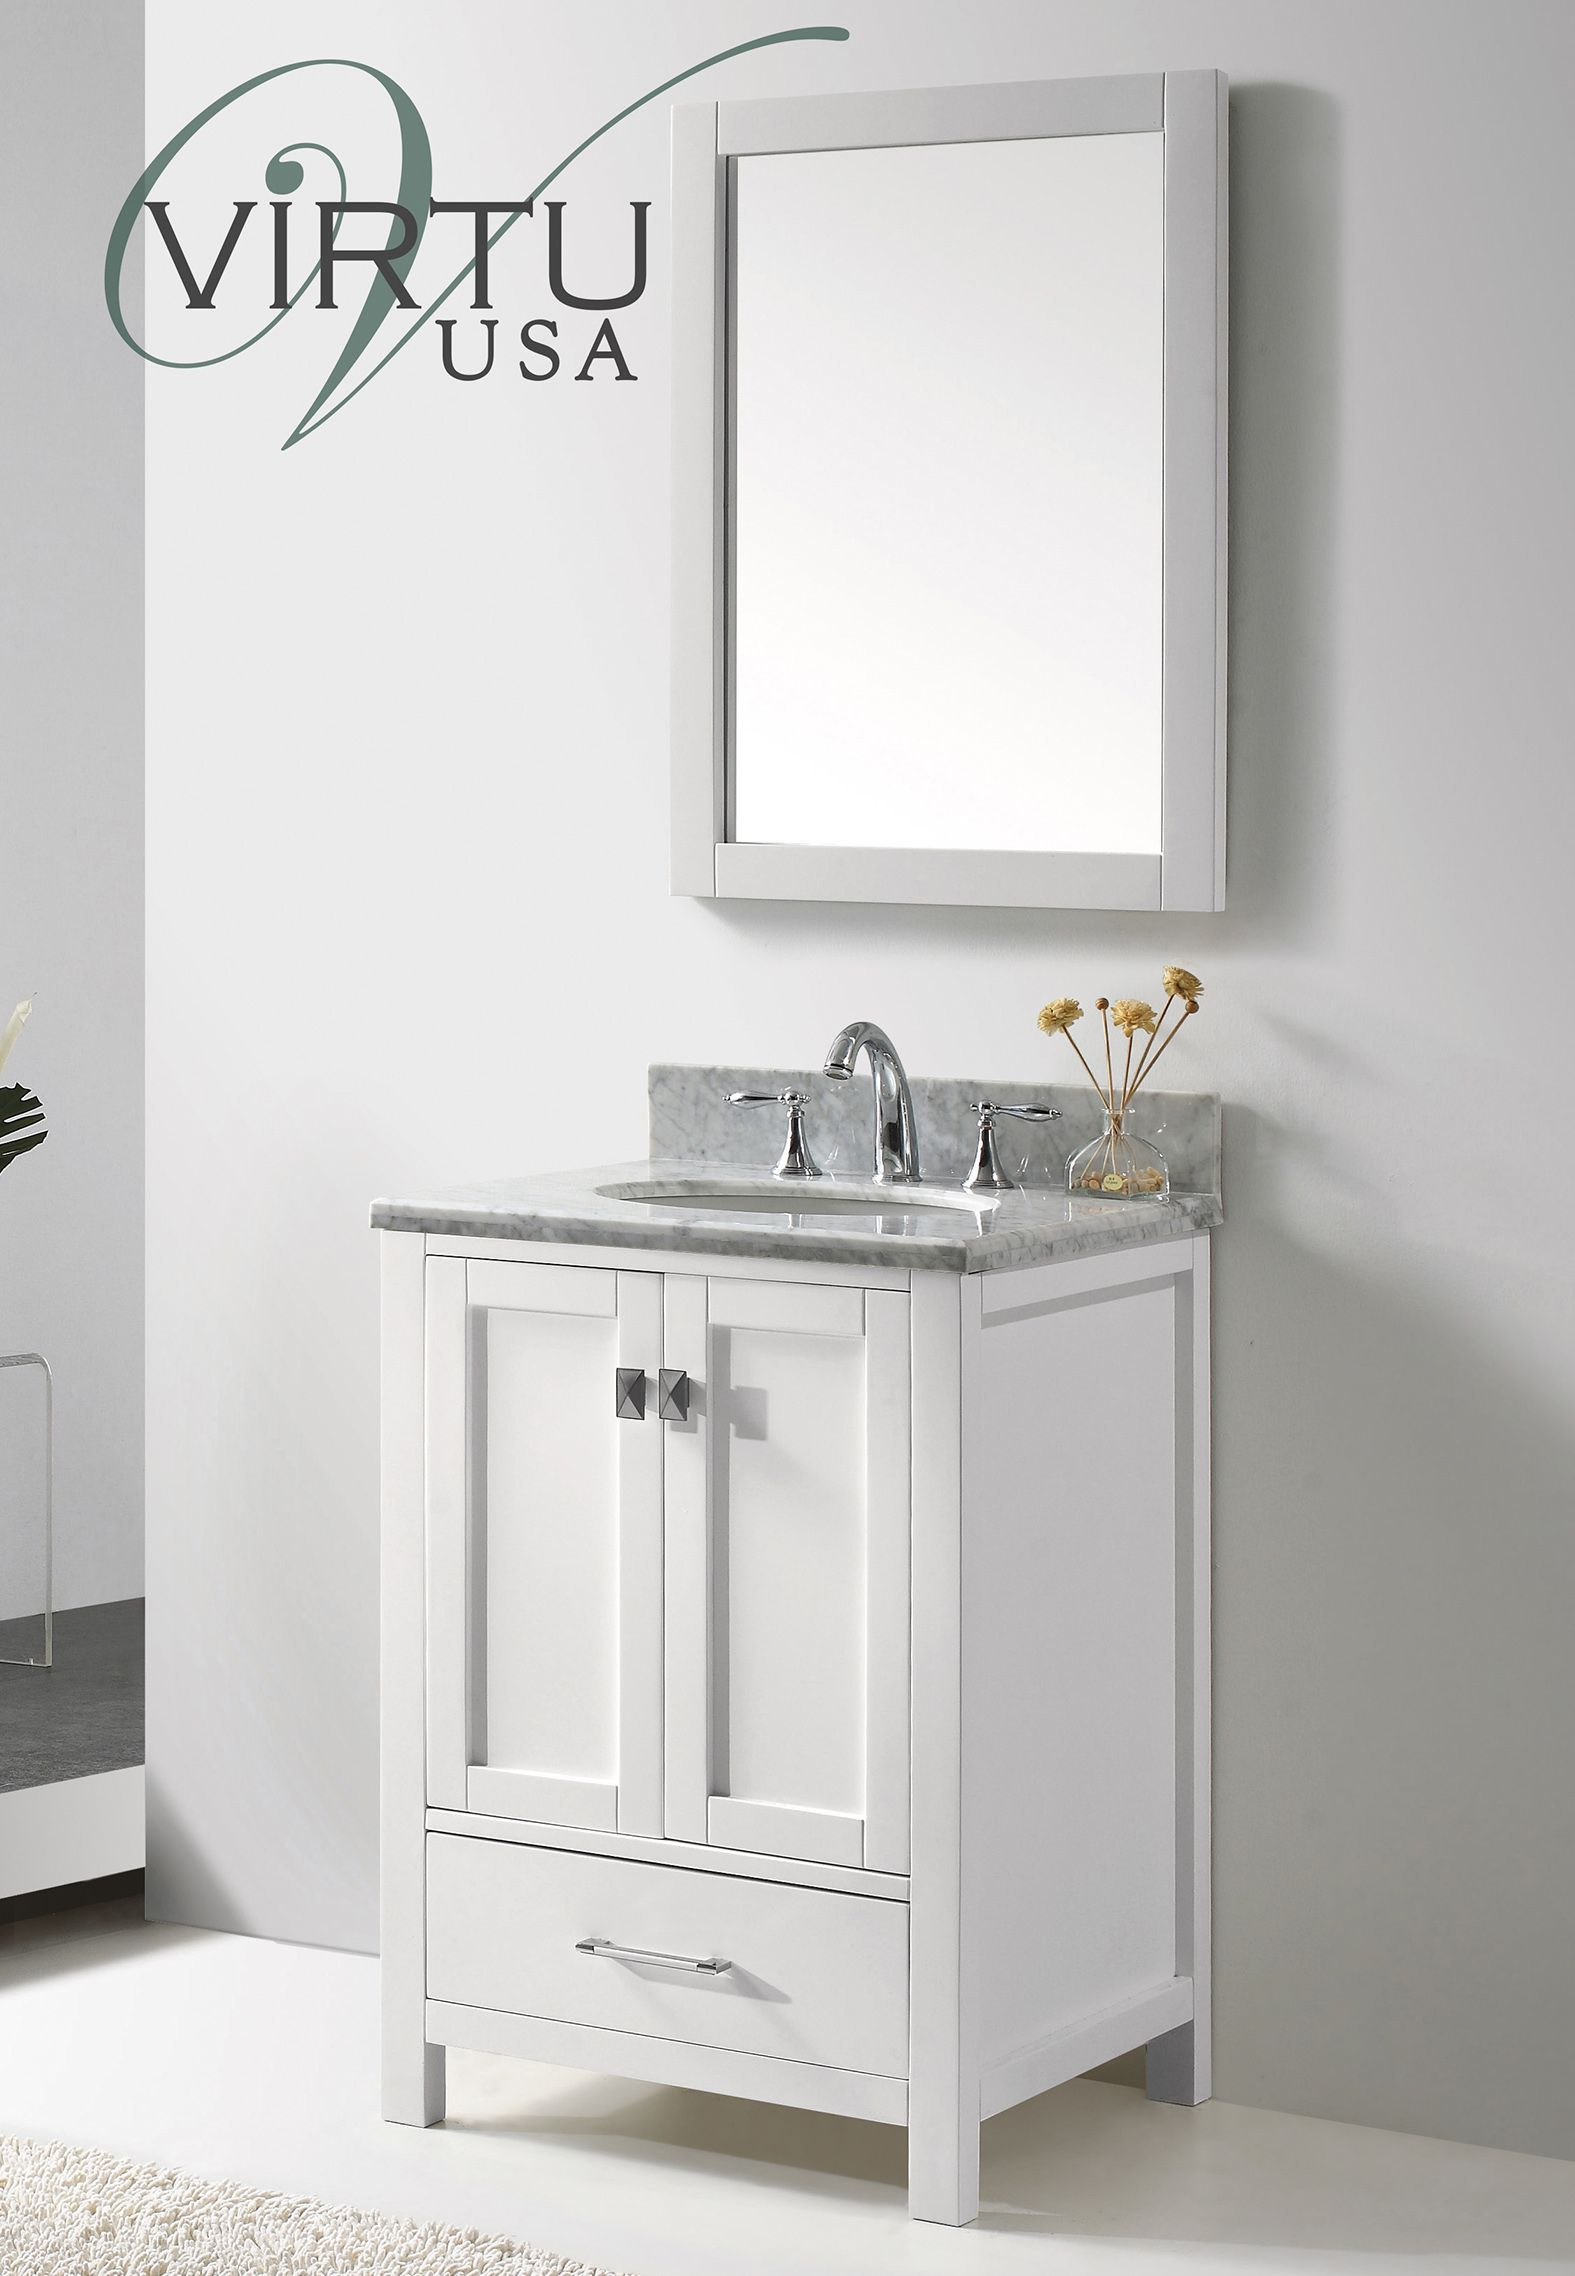 24 Inch Transitional Bathroom Vanity White Finish Set With Images Small Bathroom Vanities White Vanity Bathroom Cheap Bathroom Vanities